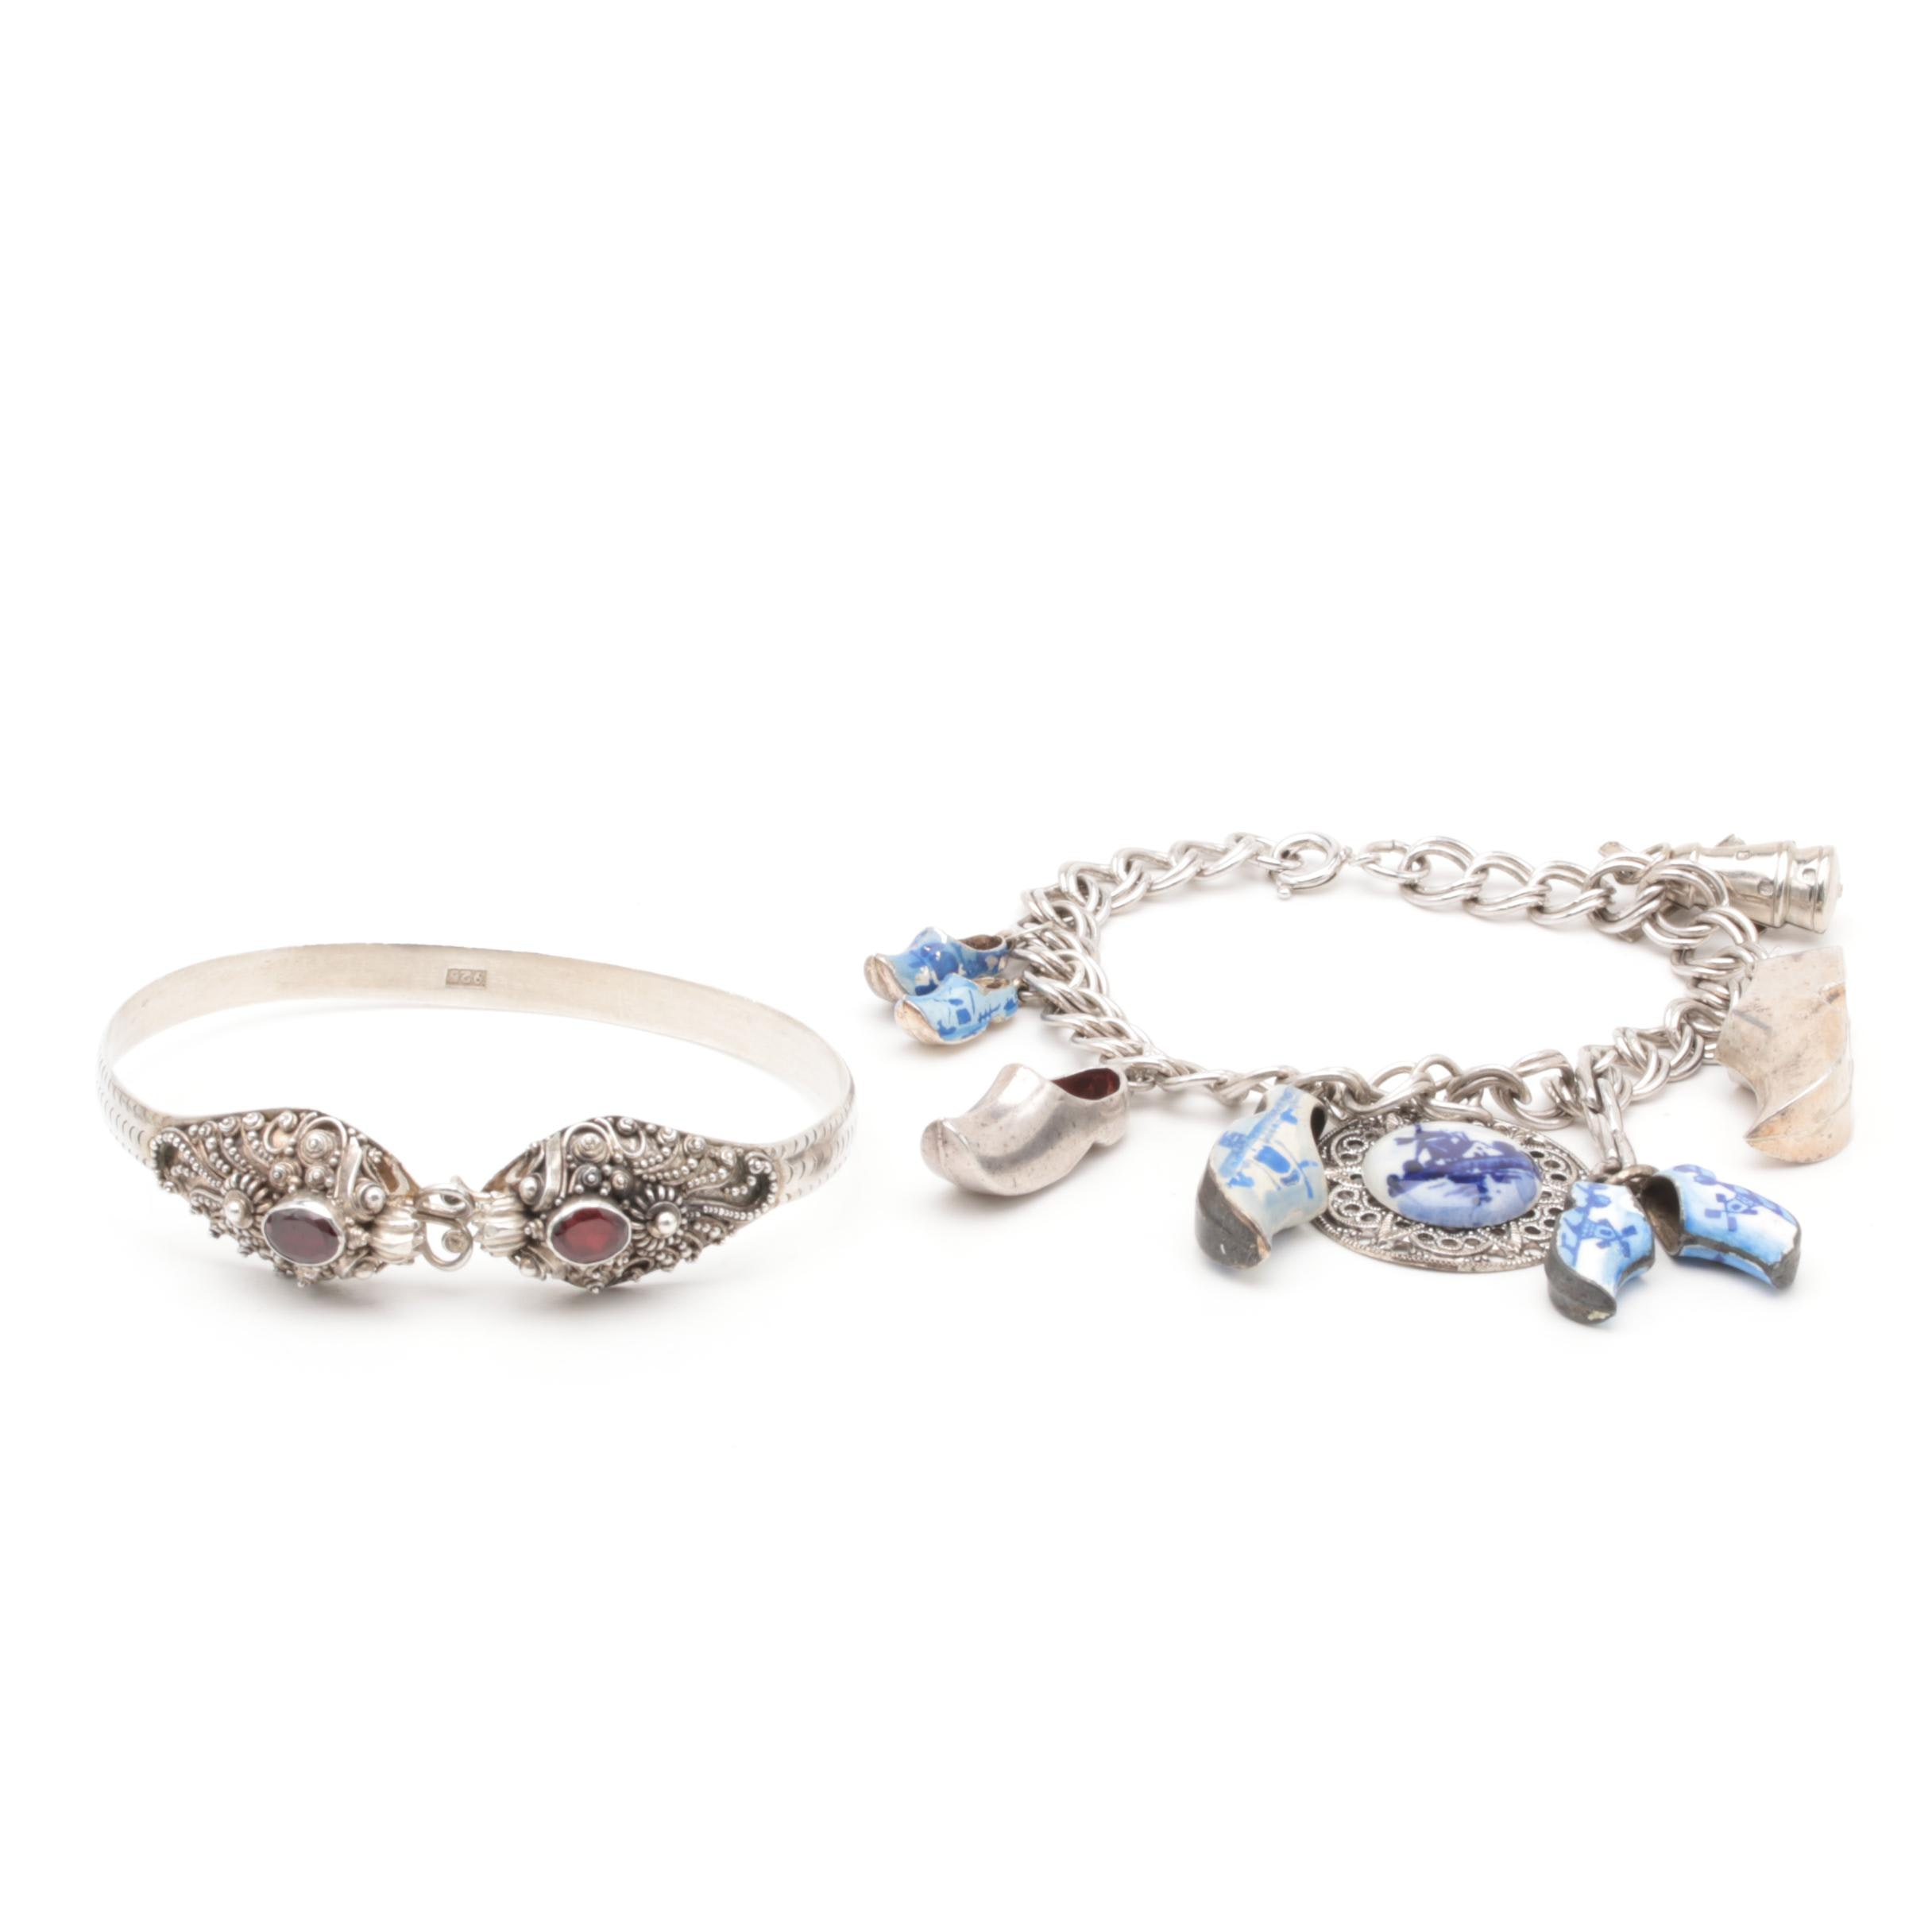 Sterling Silver Charm and Bangle Bracelets Including Enamel and 835 Silver